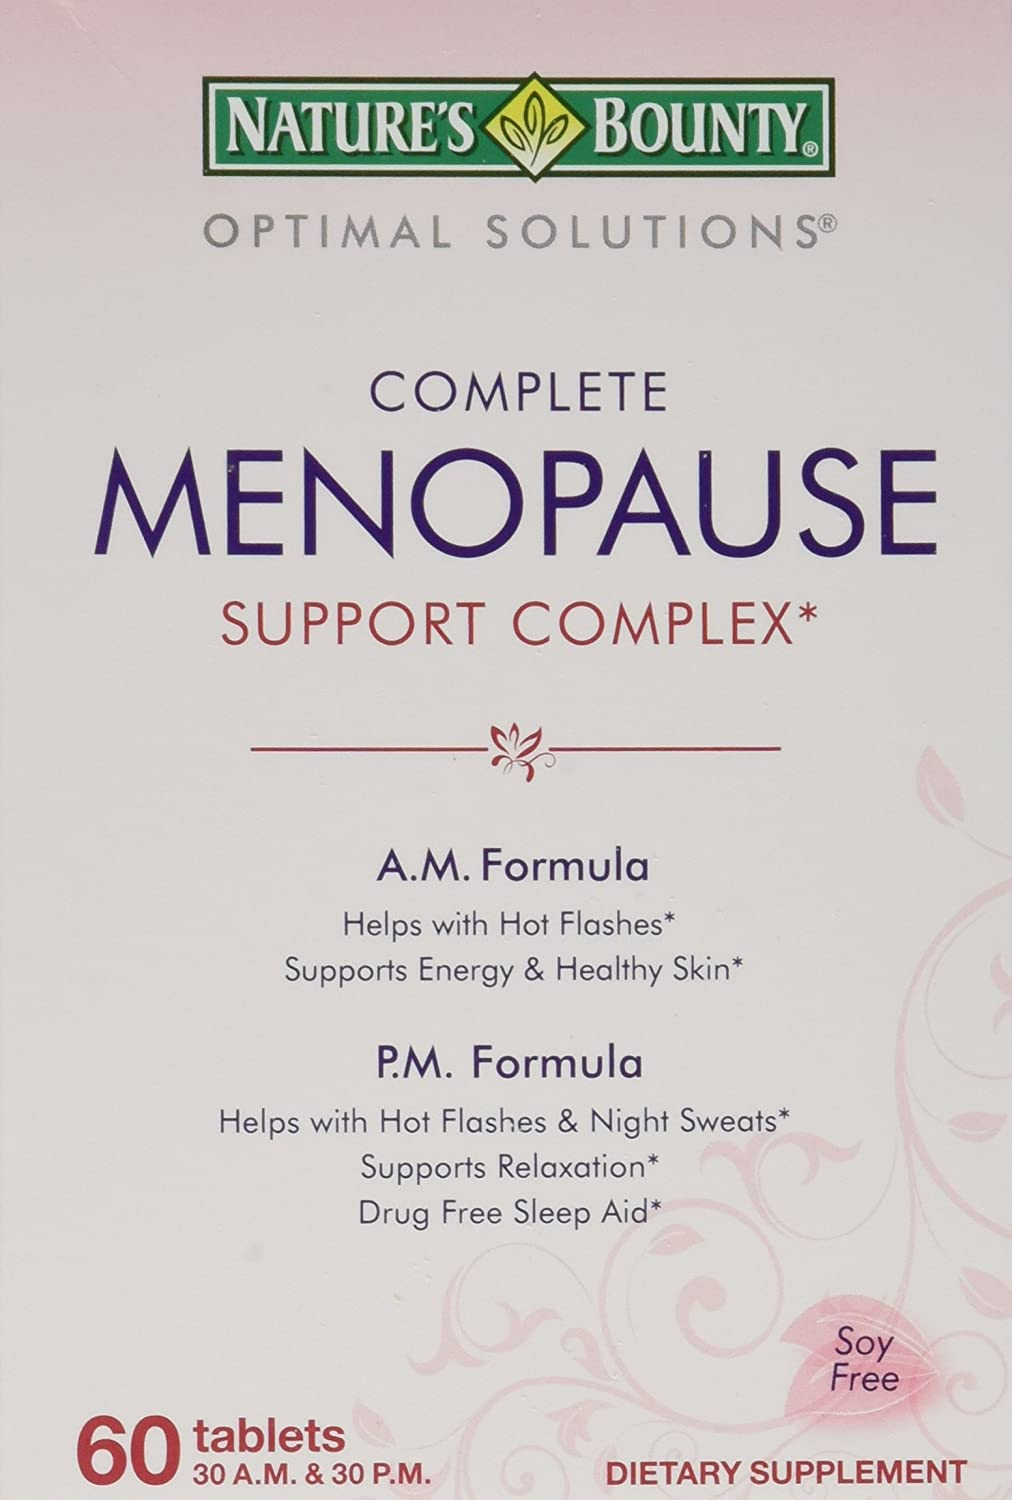 Nature's supreme Bounty Optimal Solutions famous Tablets Support 60 Menopause